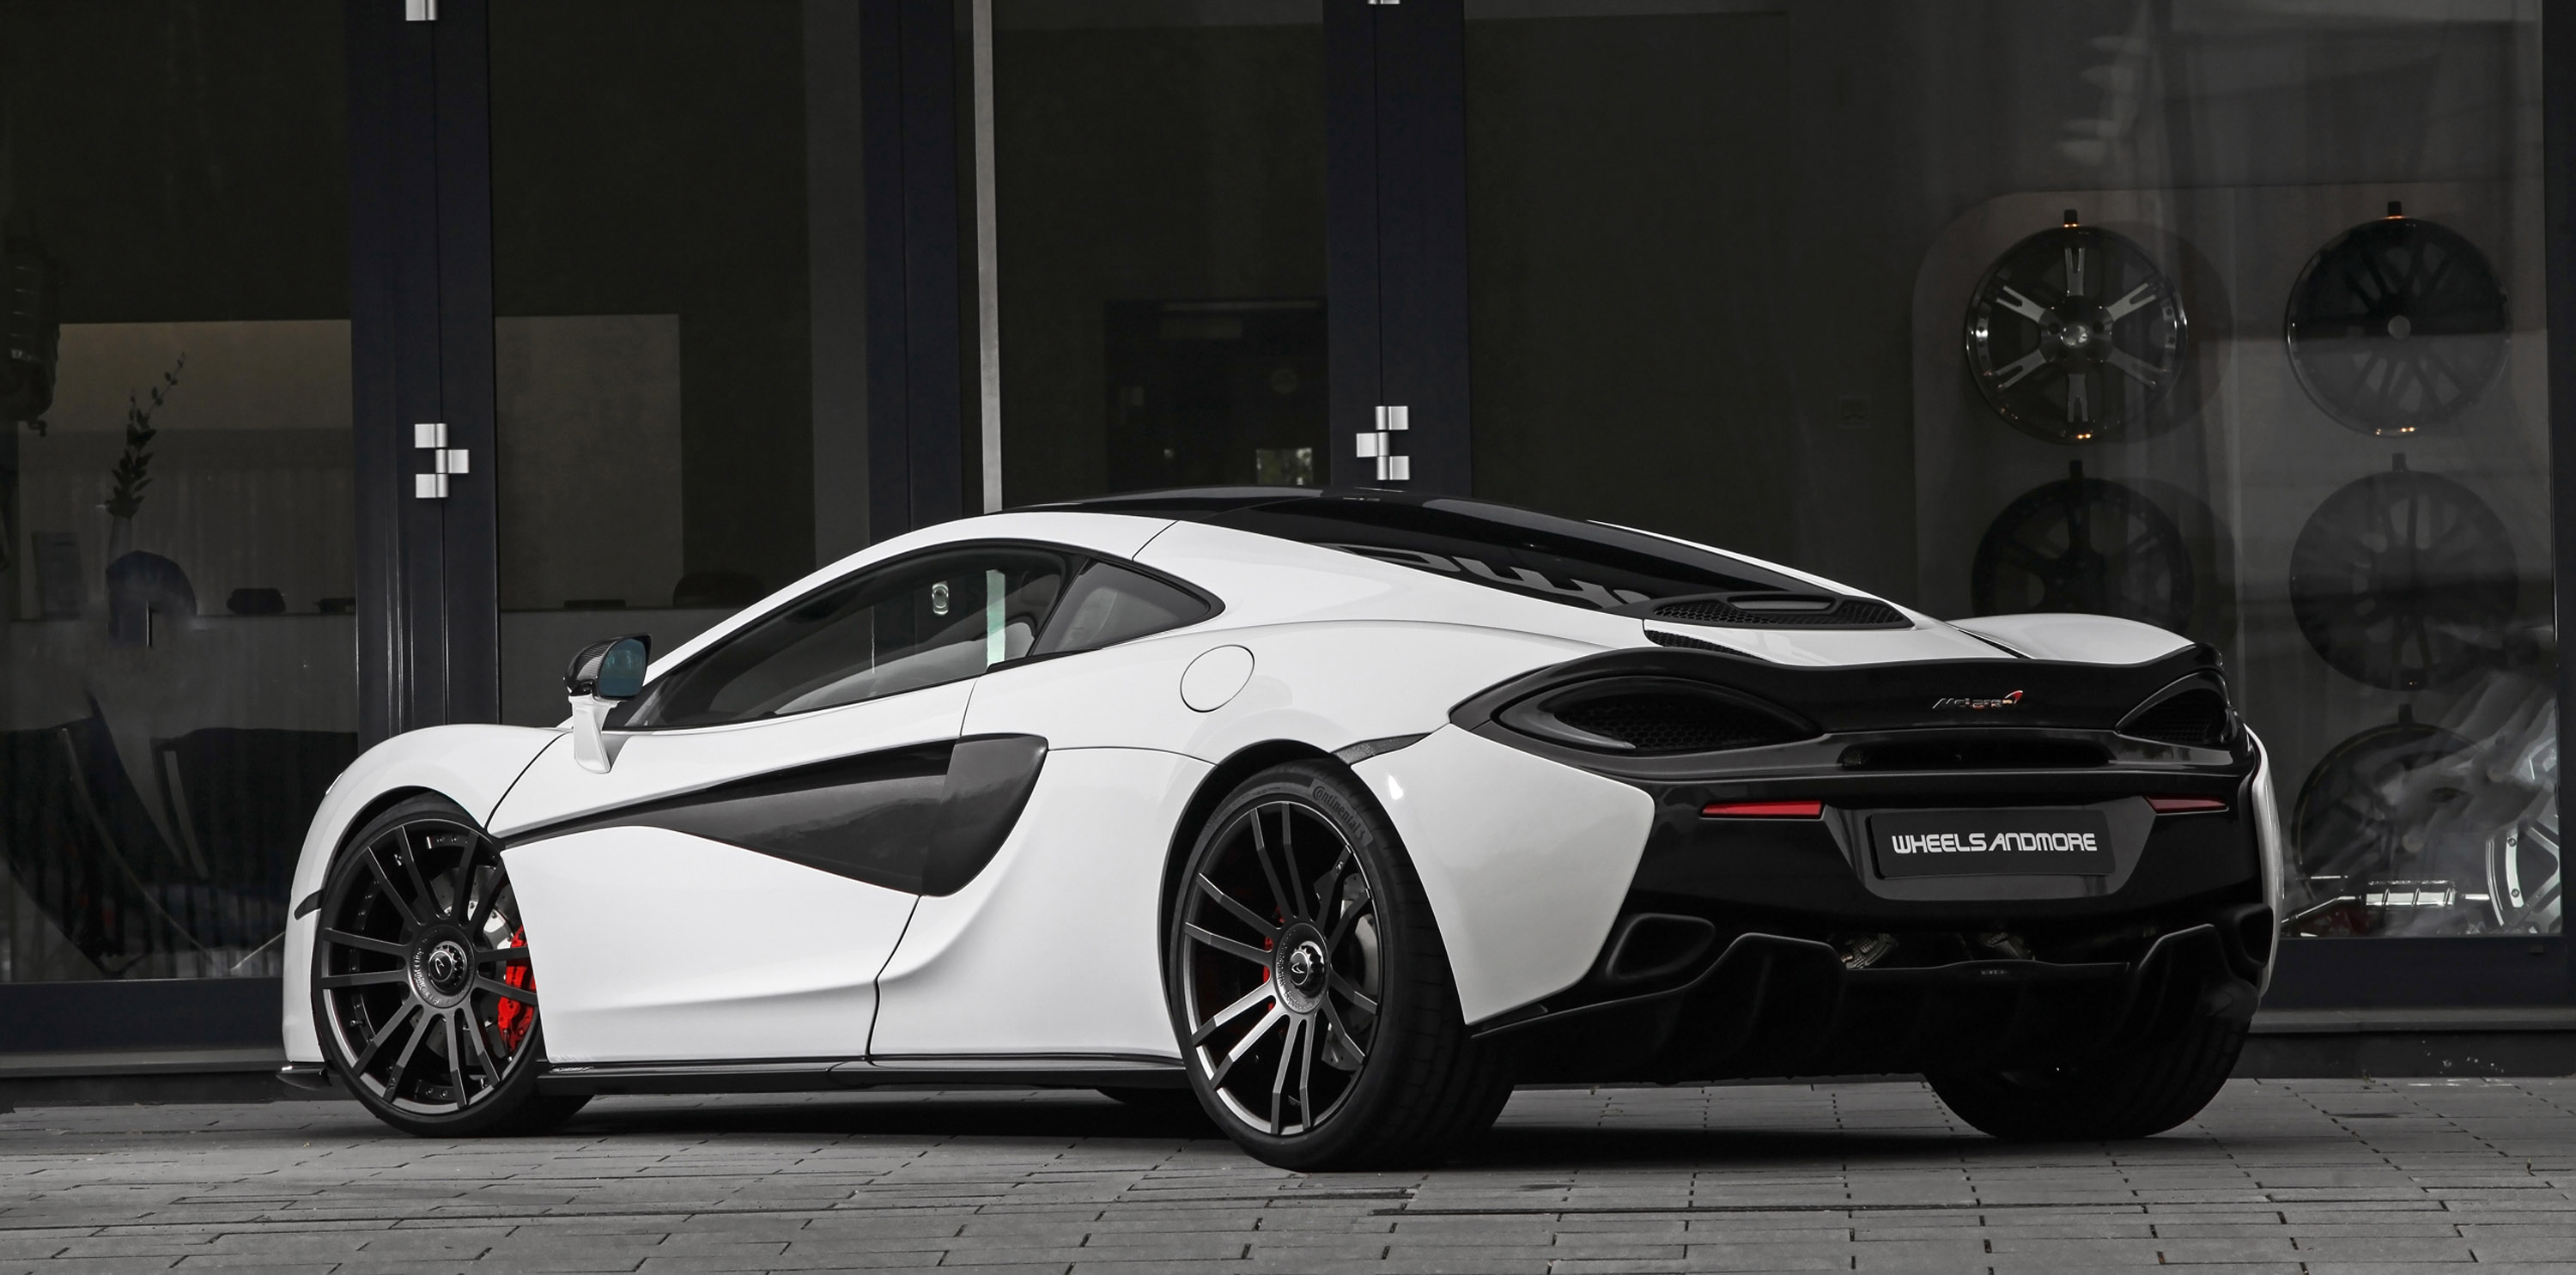 15 Inch Tires >> Wheelsandmore presents the McLaren HORNESSE